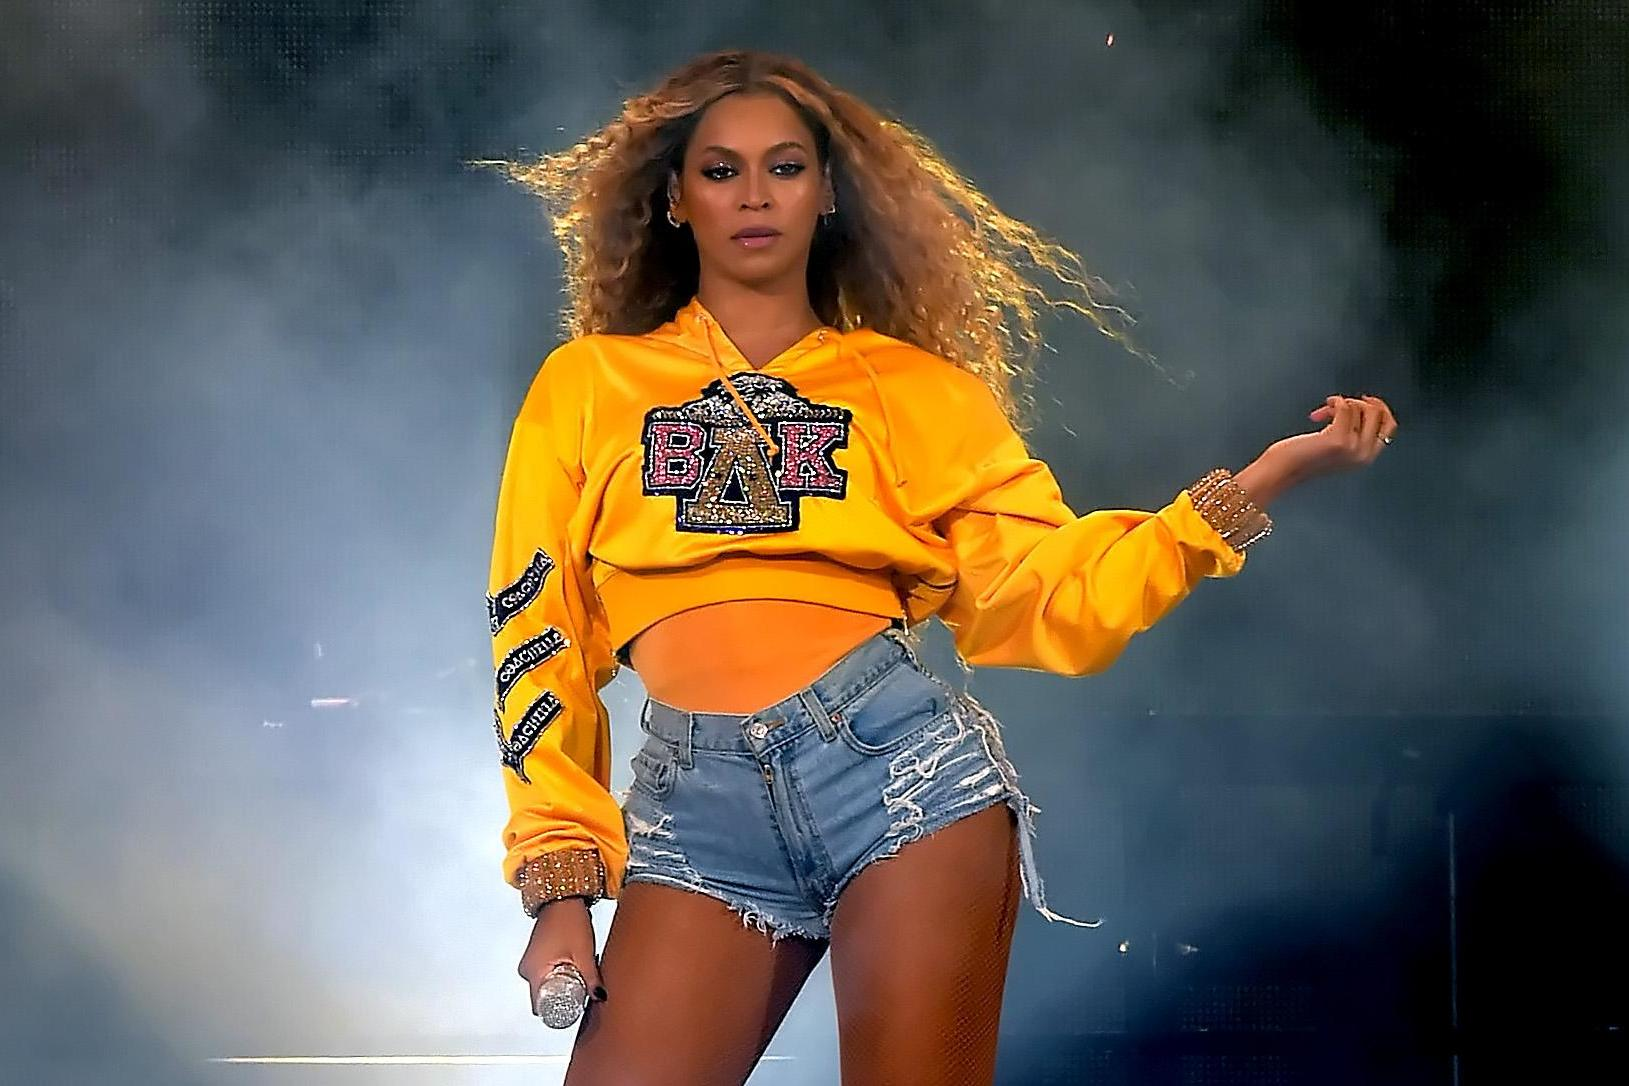 Beyoncé has unveiled her annual holiday collection, complete with 'HolidaYoncé' hoodies